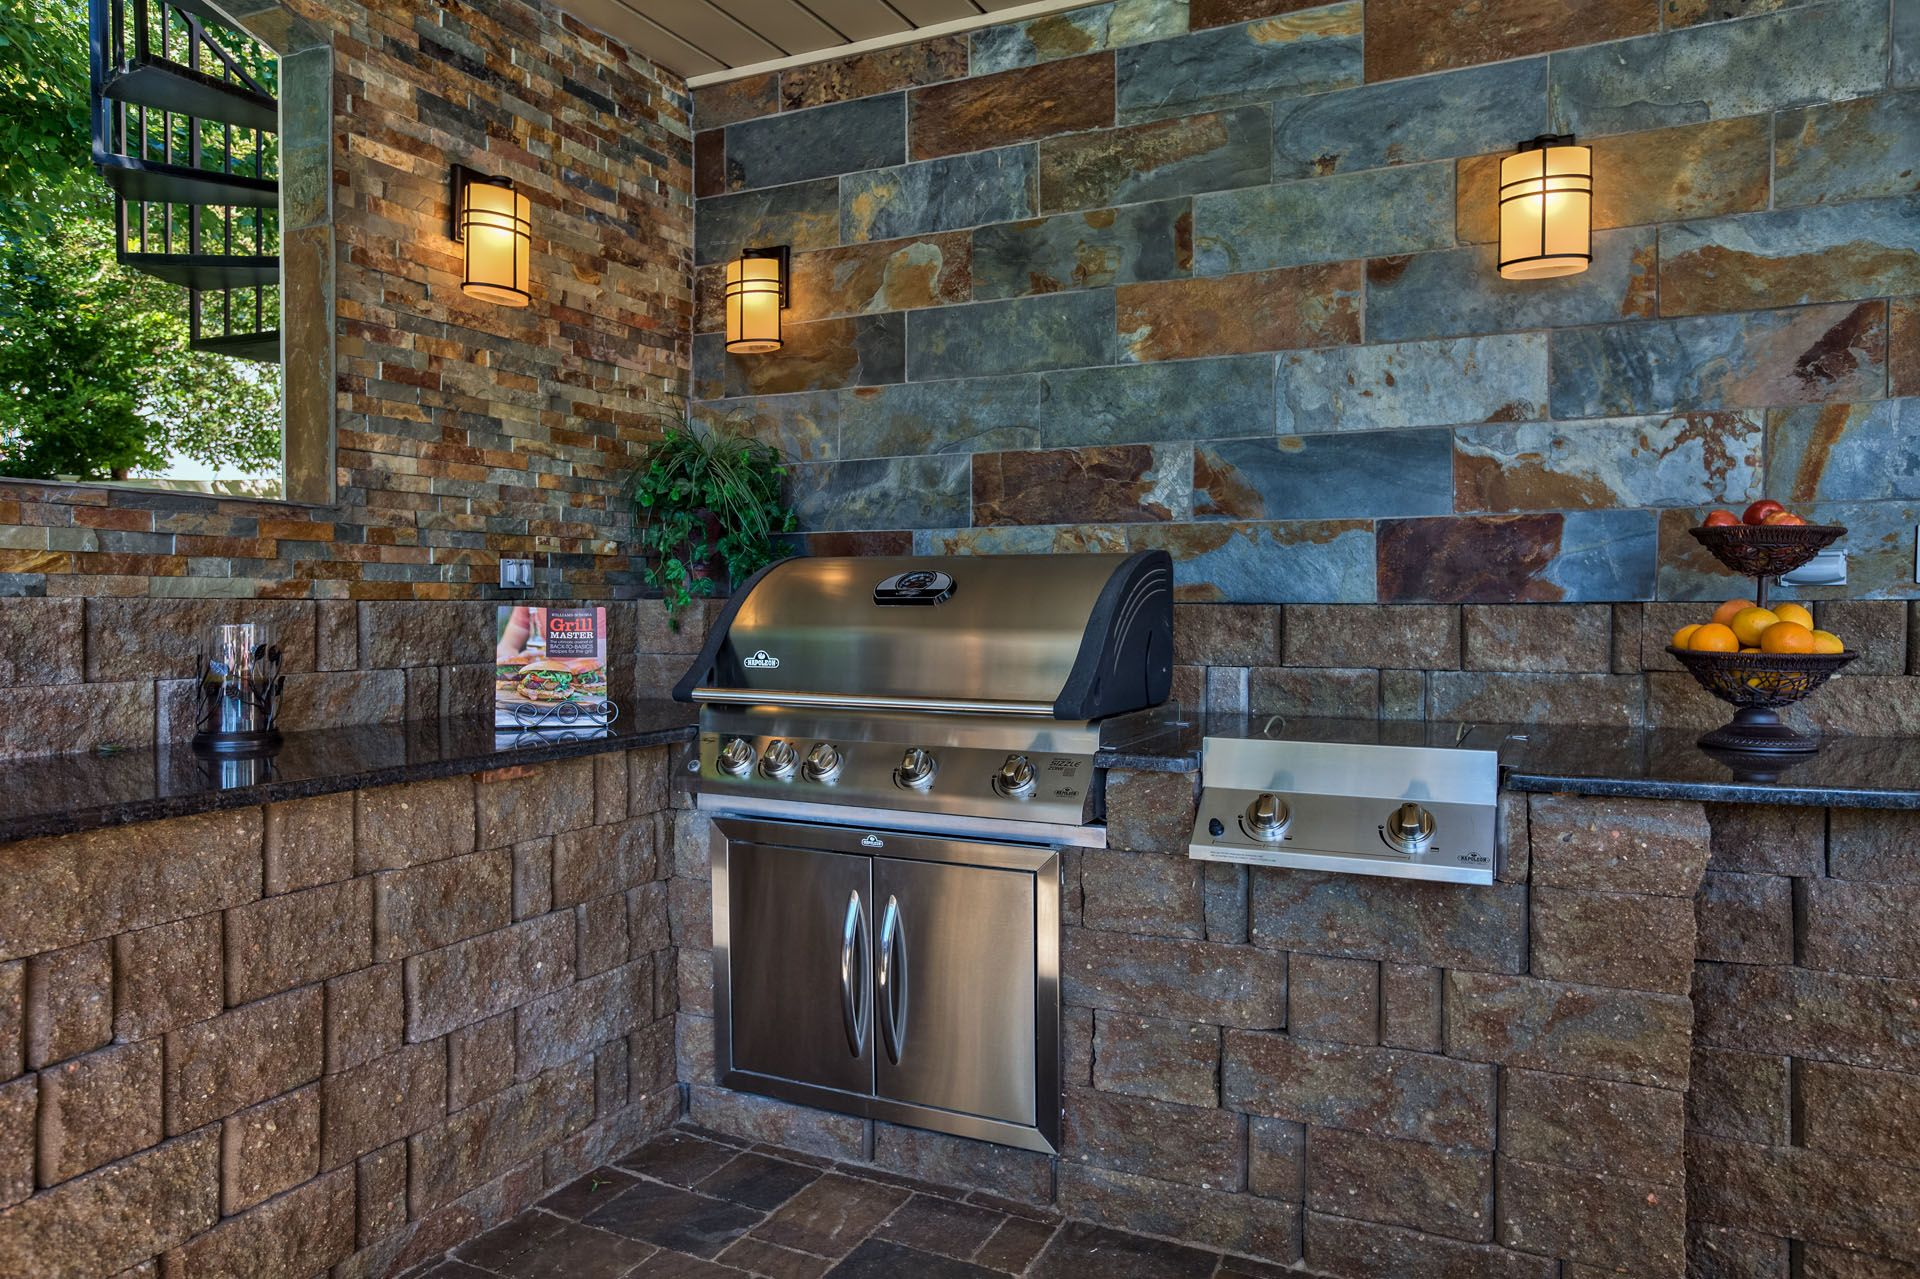 This outdoor kitchen has beautiful tile work with a